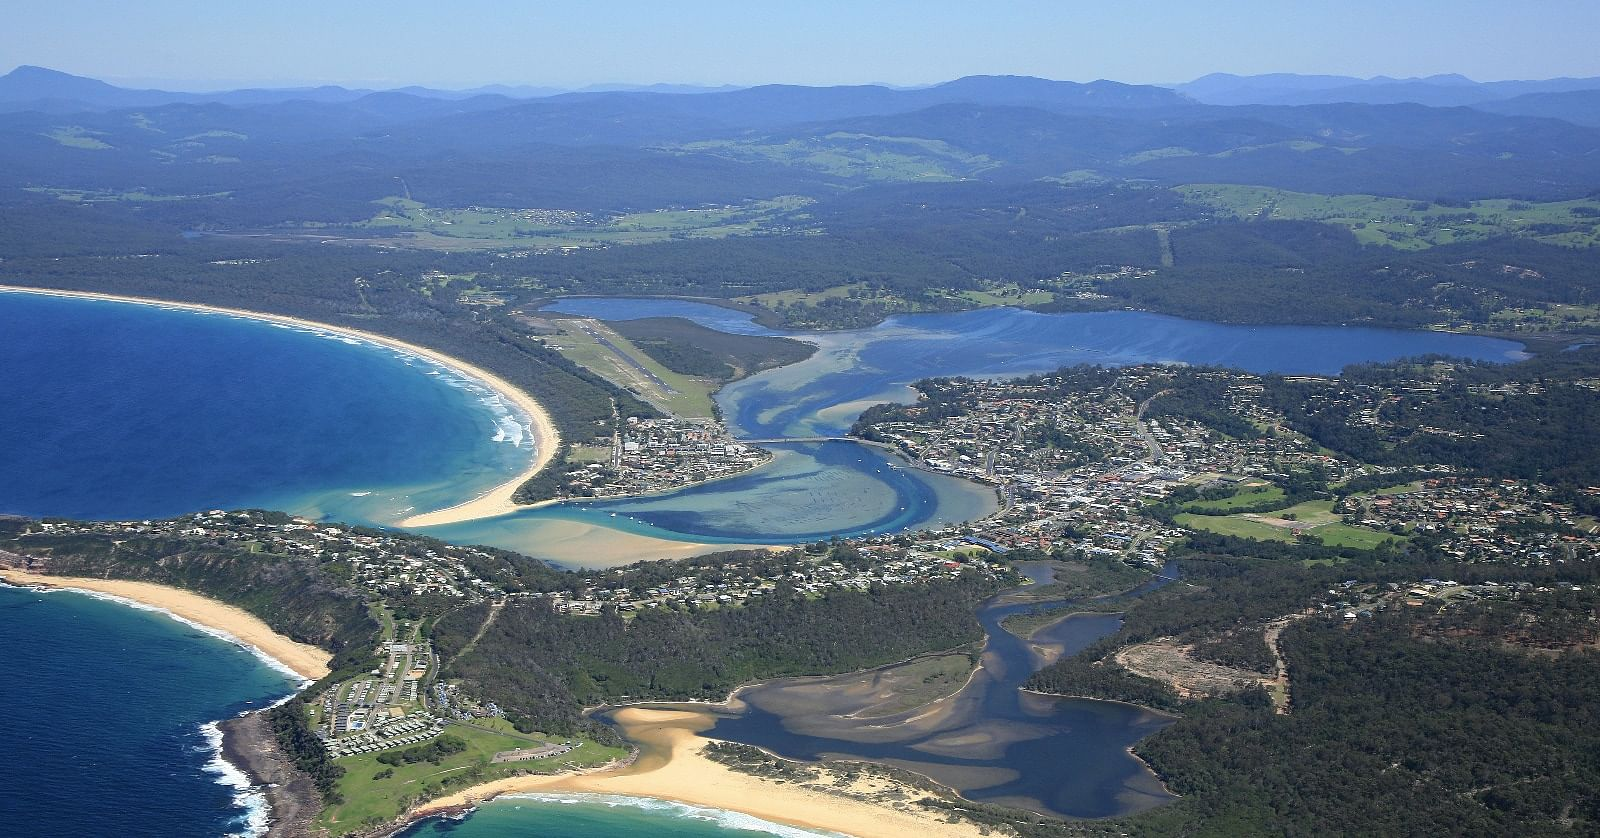 Merimbula airial view with airport in the background.